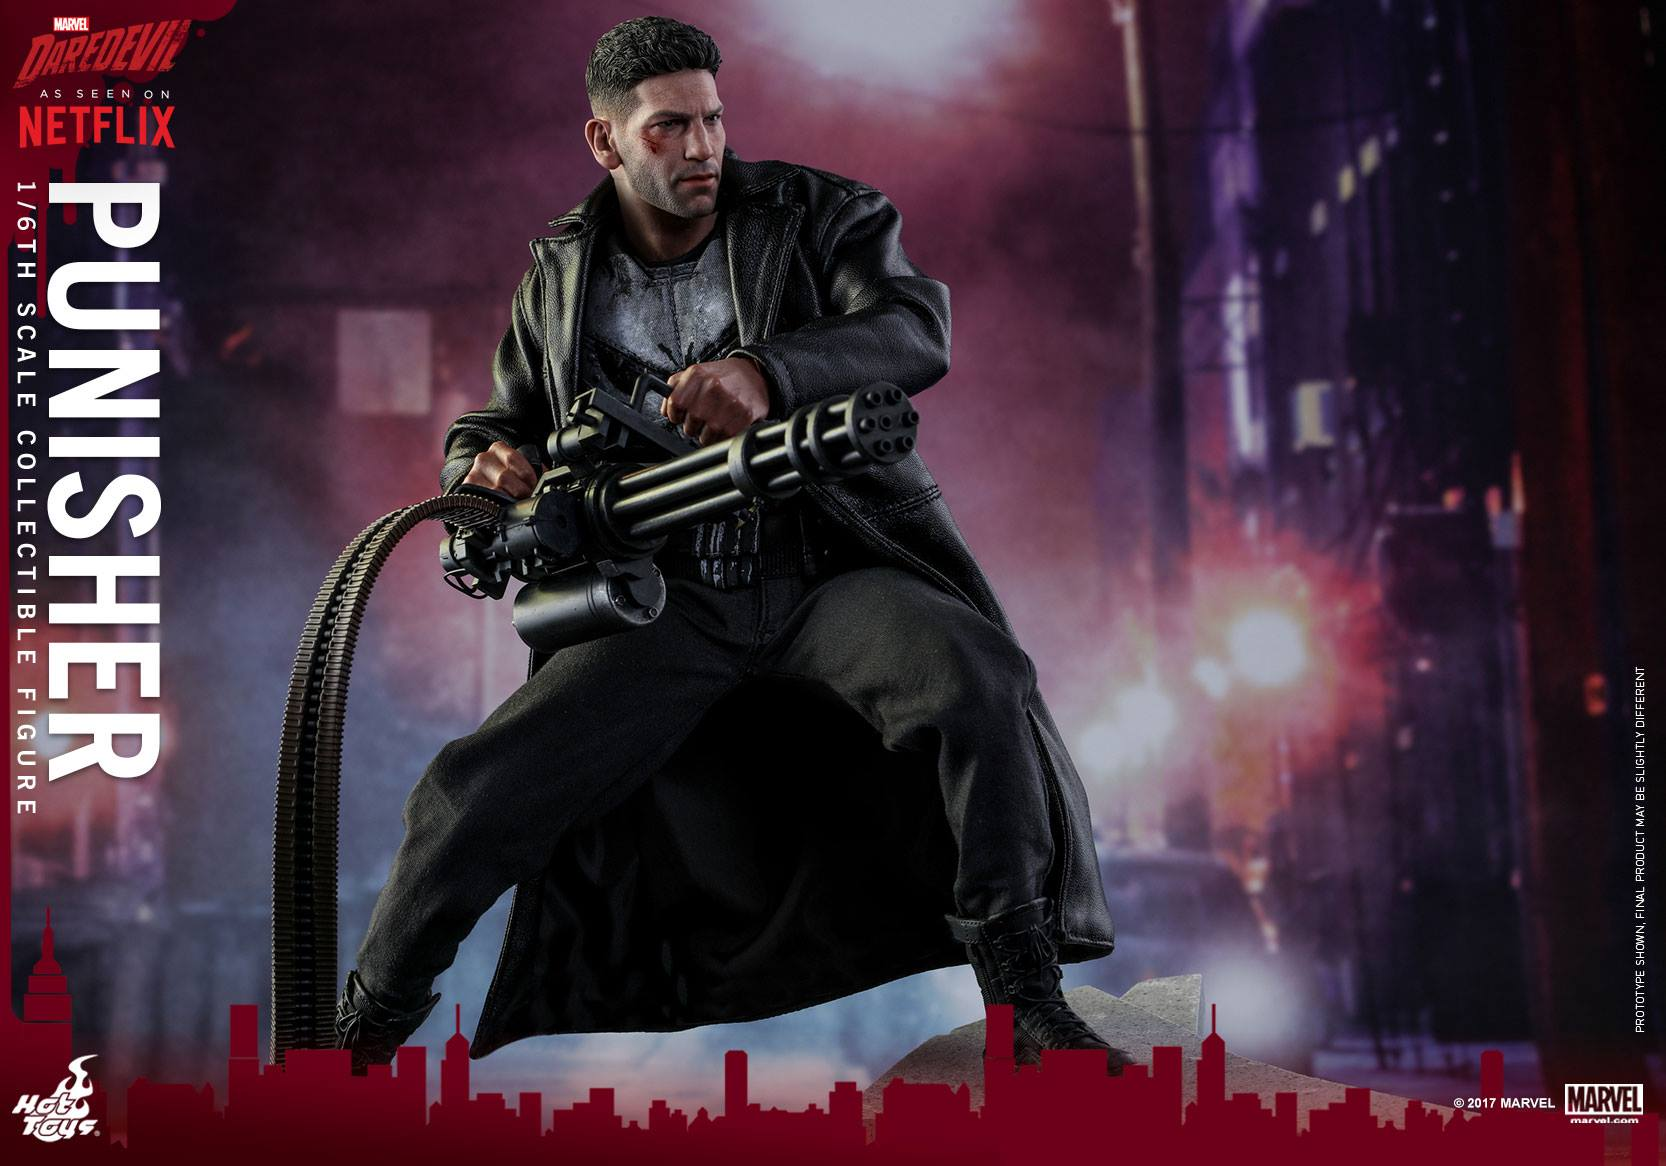 Hot Toys The Punisher Sixth Scale Figure Official Details & Images